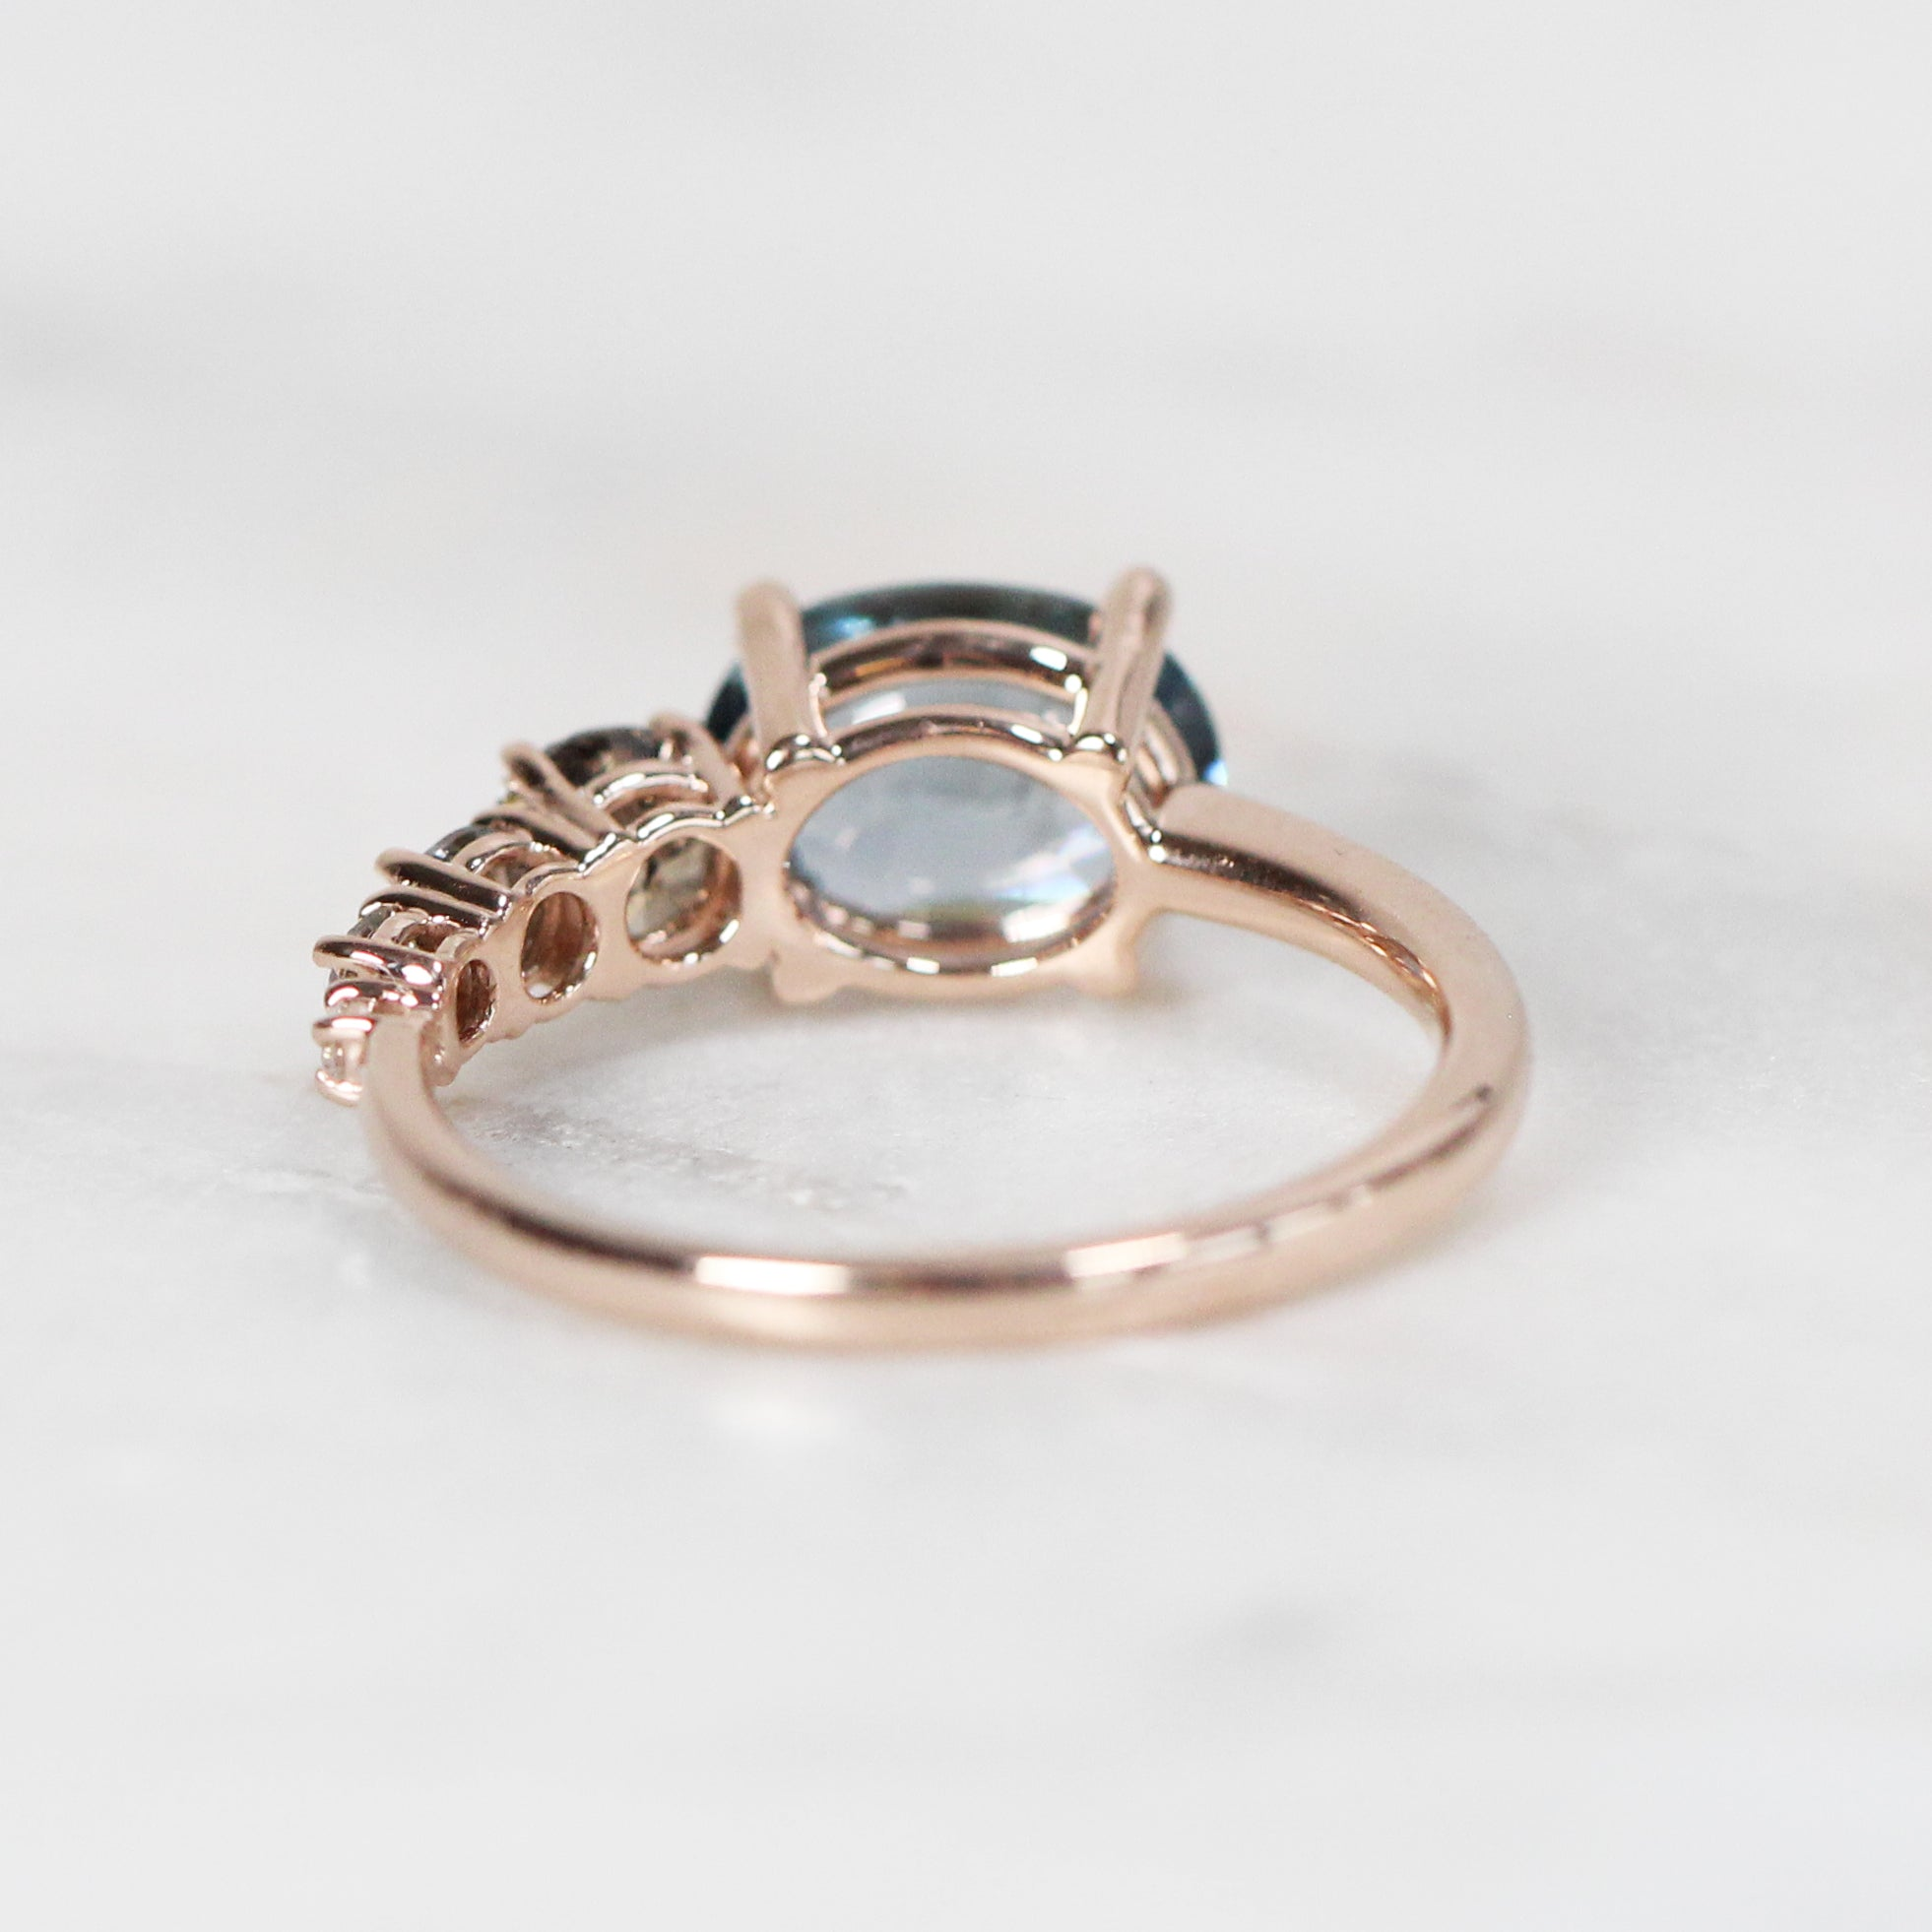 Lola ring with 2.12 Sapphire and gray white diamonds 10k Rose Gold- Ready to Size and Ship - Celestial Diamonds ® by Midwinter Co.